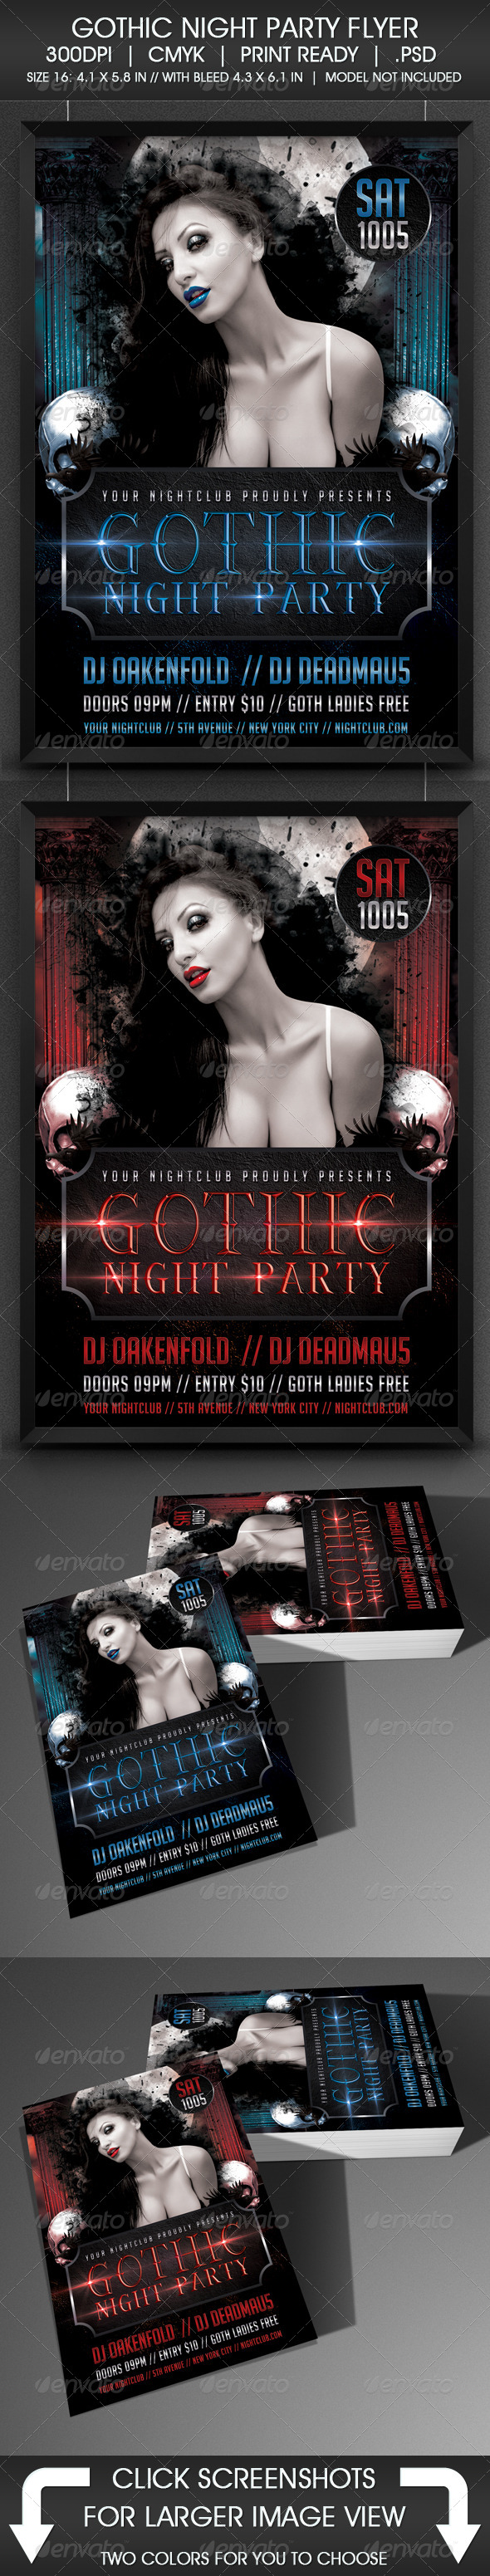 Gothic Night Party Flyer - Clubs & Parties Events